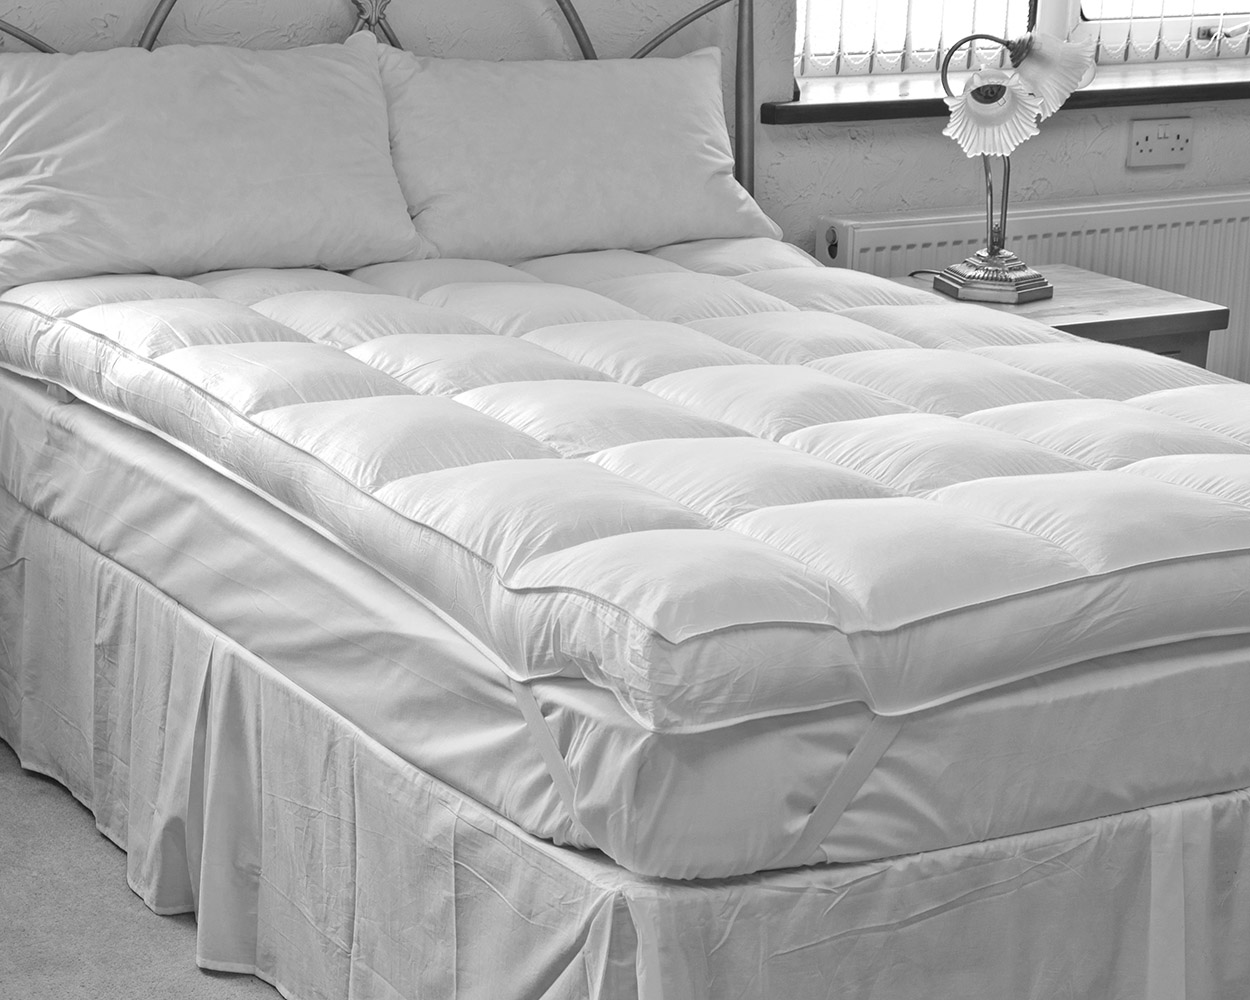 'Sleep On A Cloud' 4 inch (10cm) Extra Thick Mattress Topper